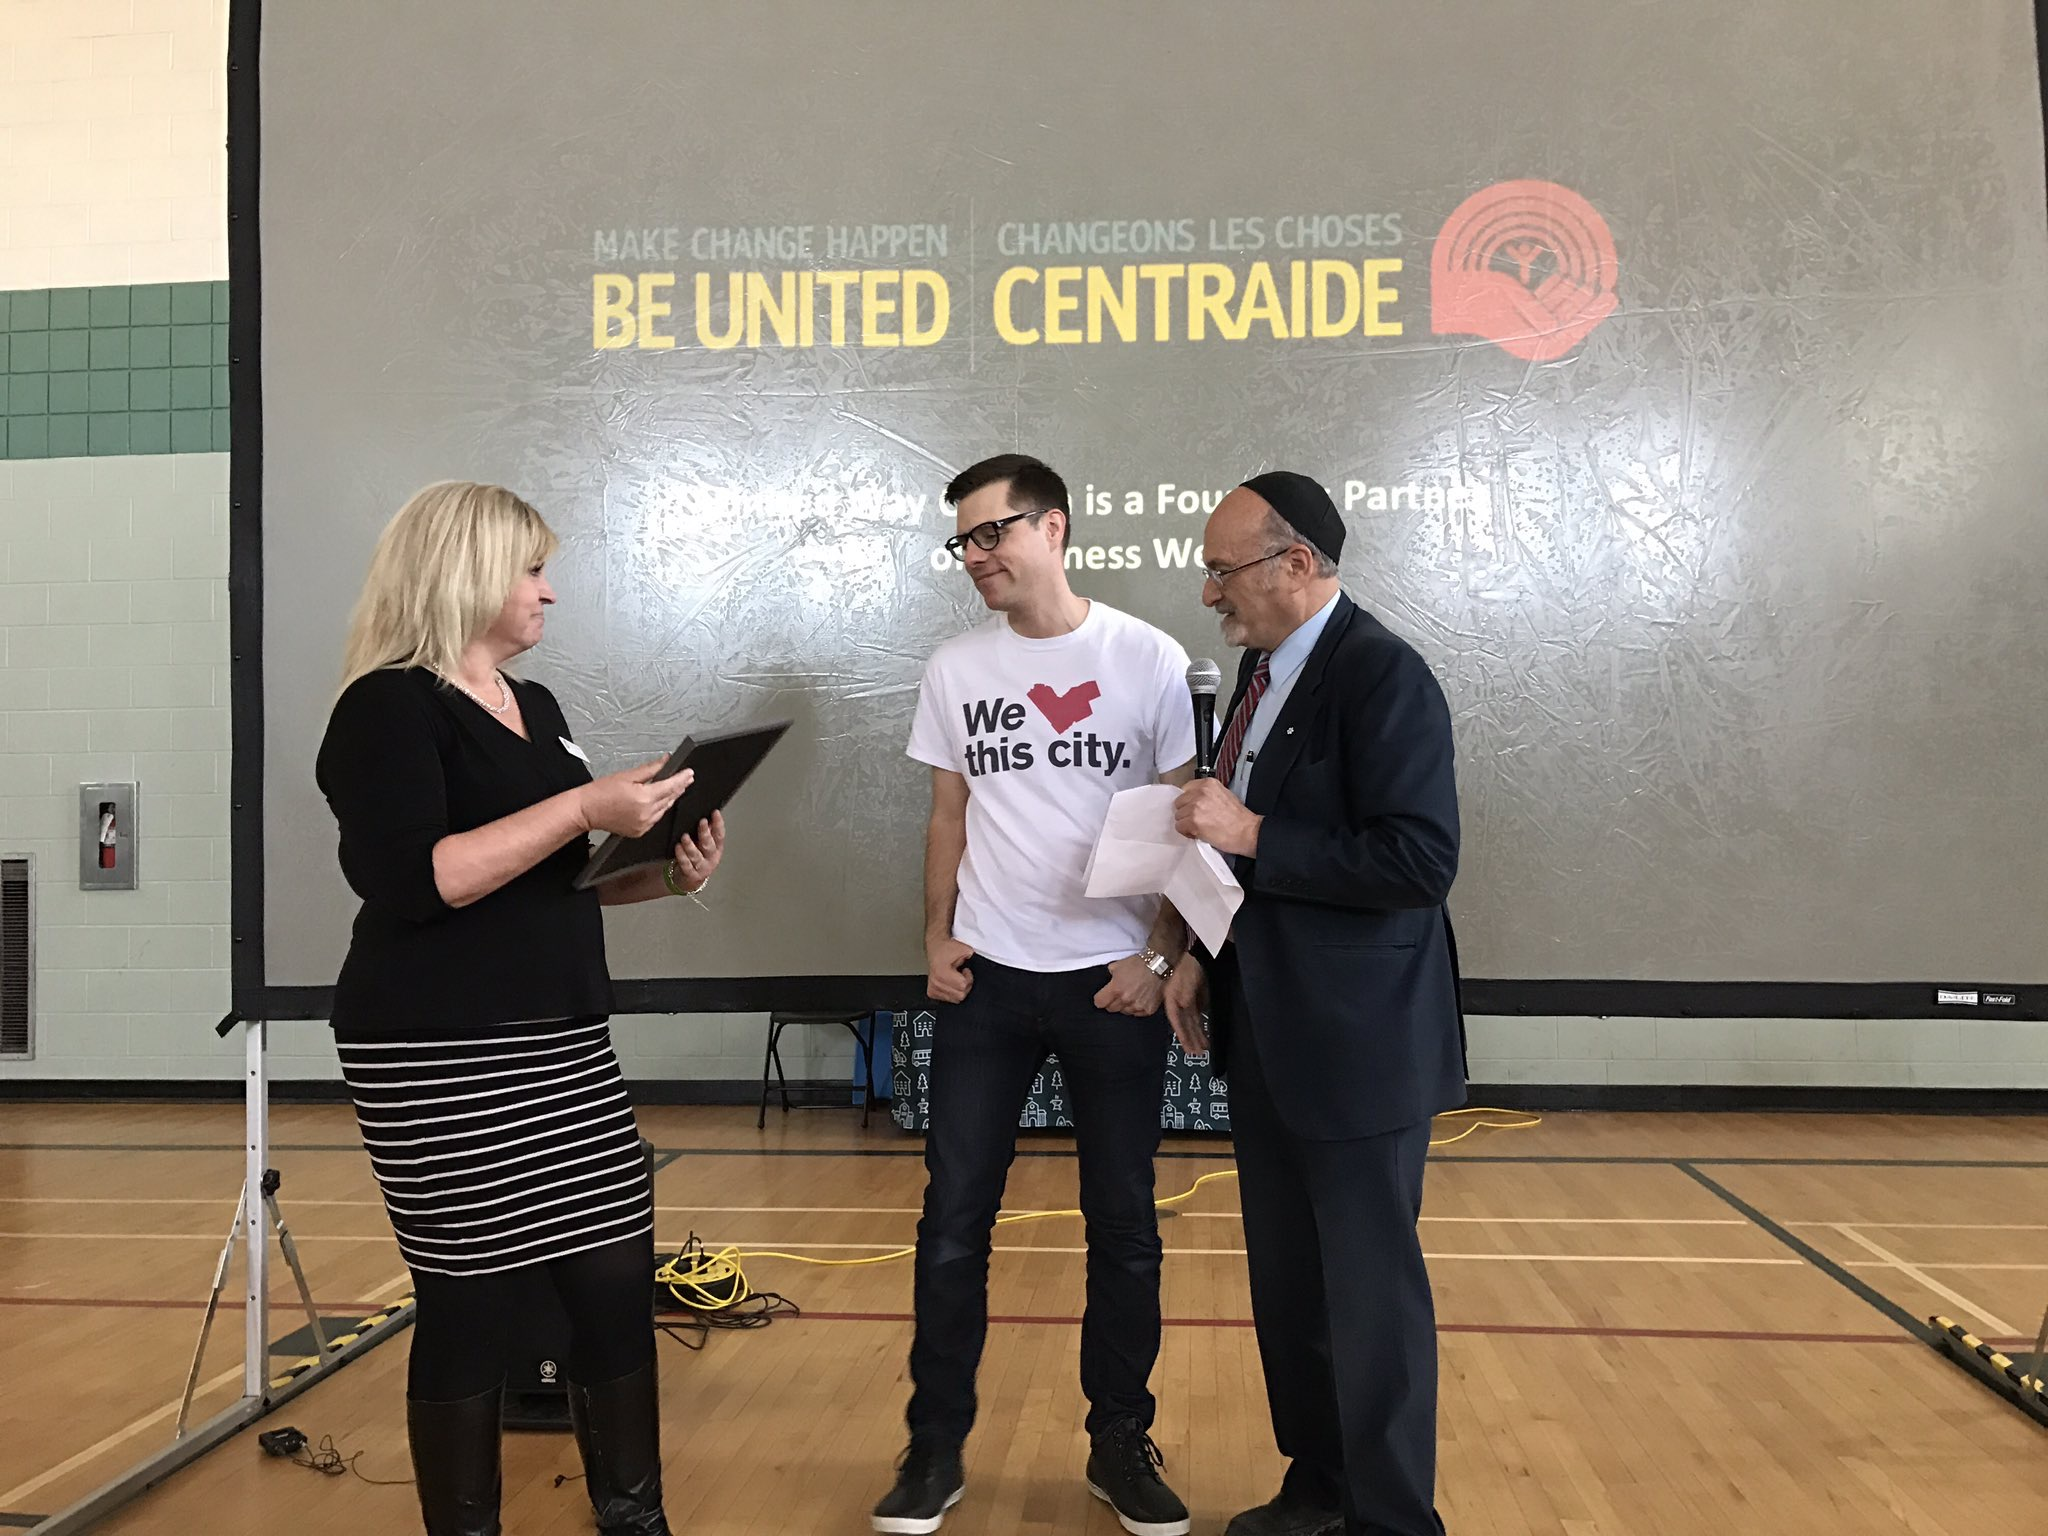 Peter Joynt Receives Kindness Award